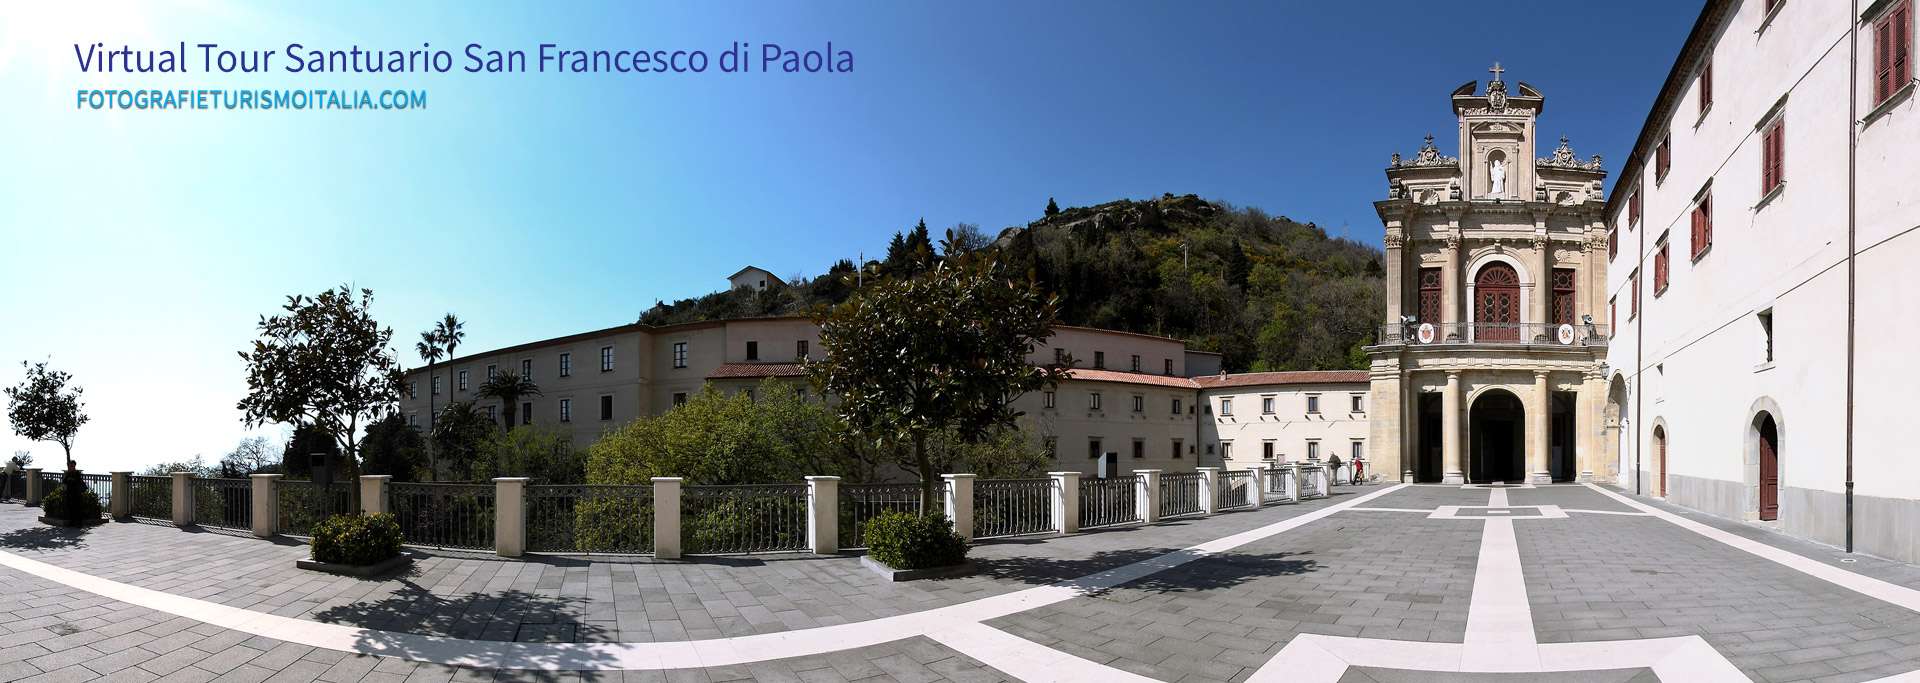 Fotografia 360, virtual tour San Francesco di Paola.